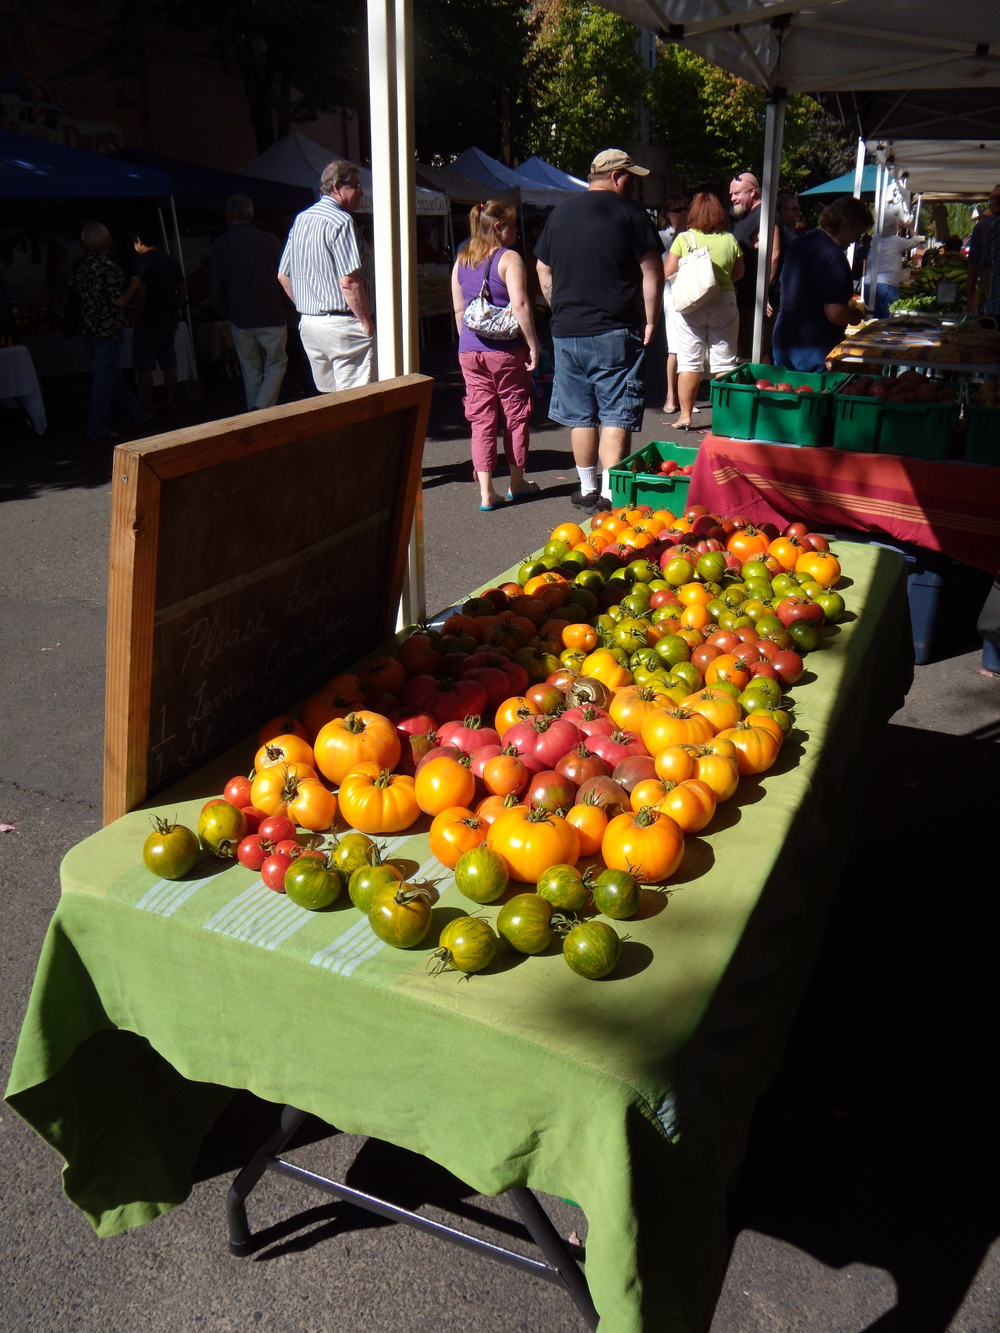 Heirloom Tomatoes at Market